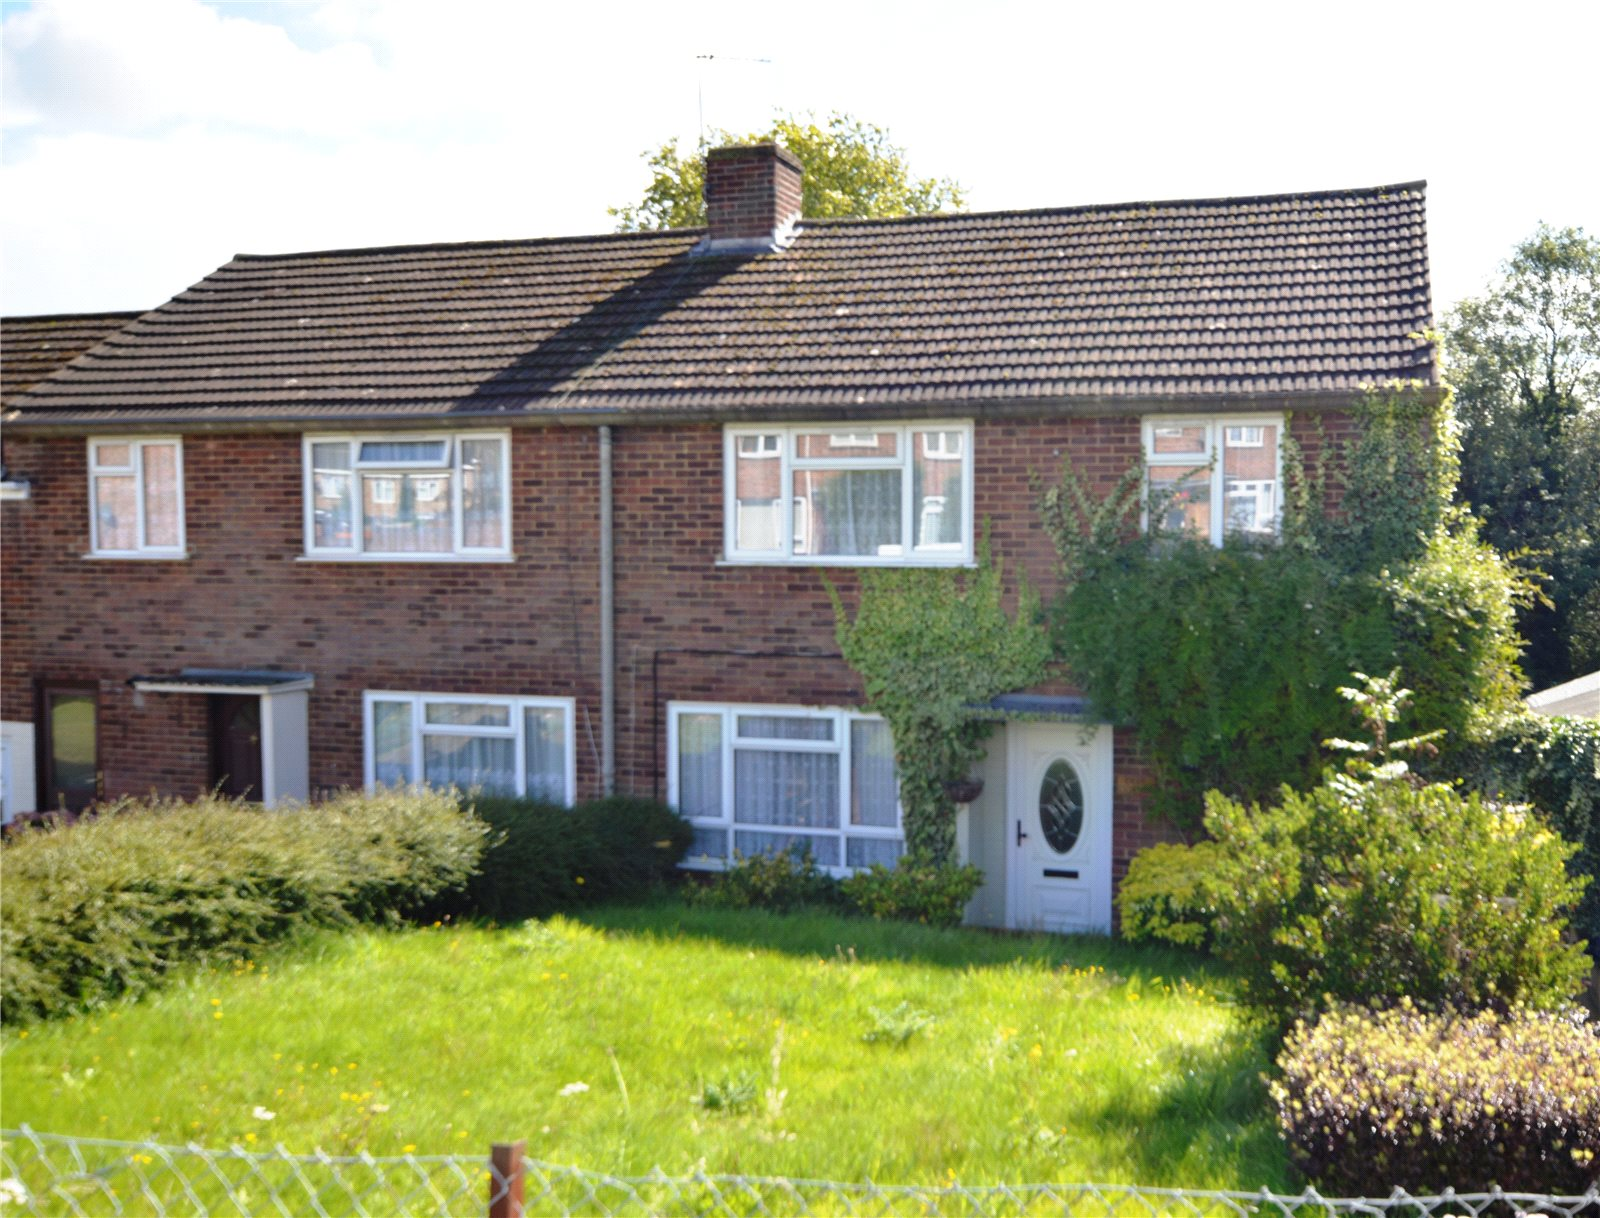 3 Bedrooms End Of Terrace House for sale in Wensley Road, Reading, Berkshire, RG1